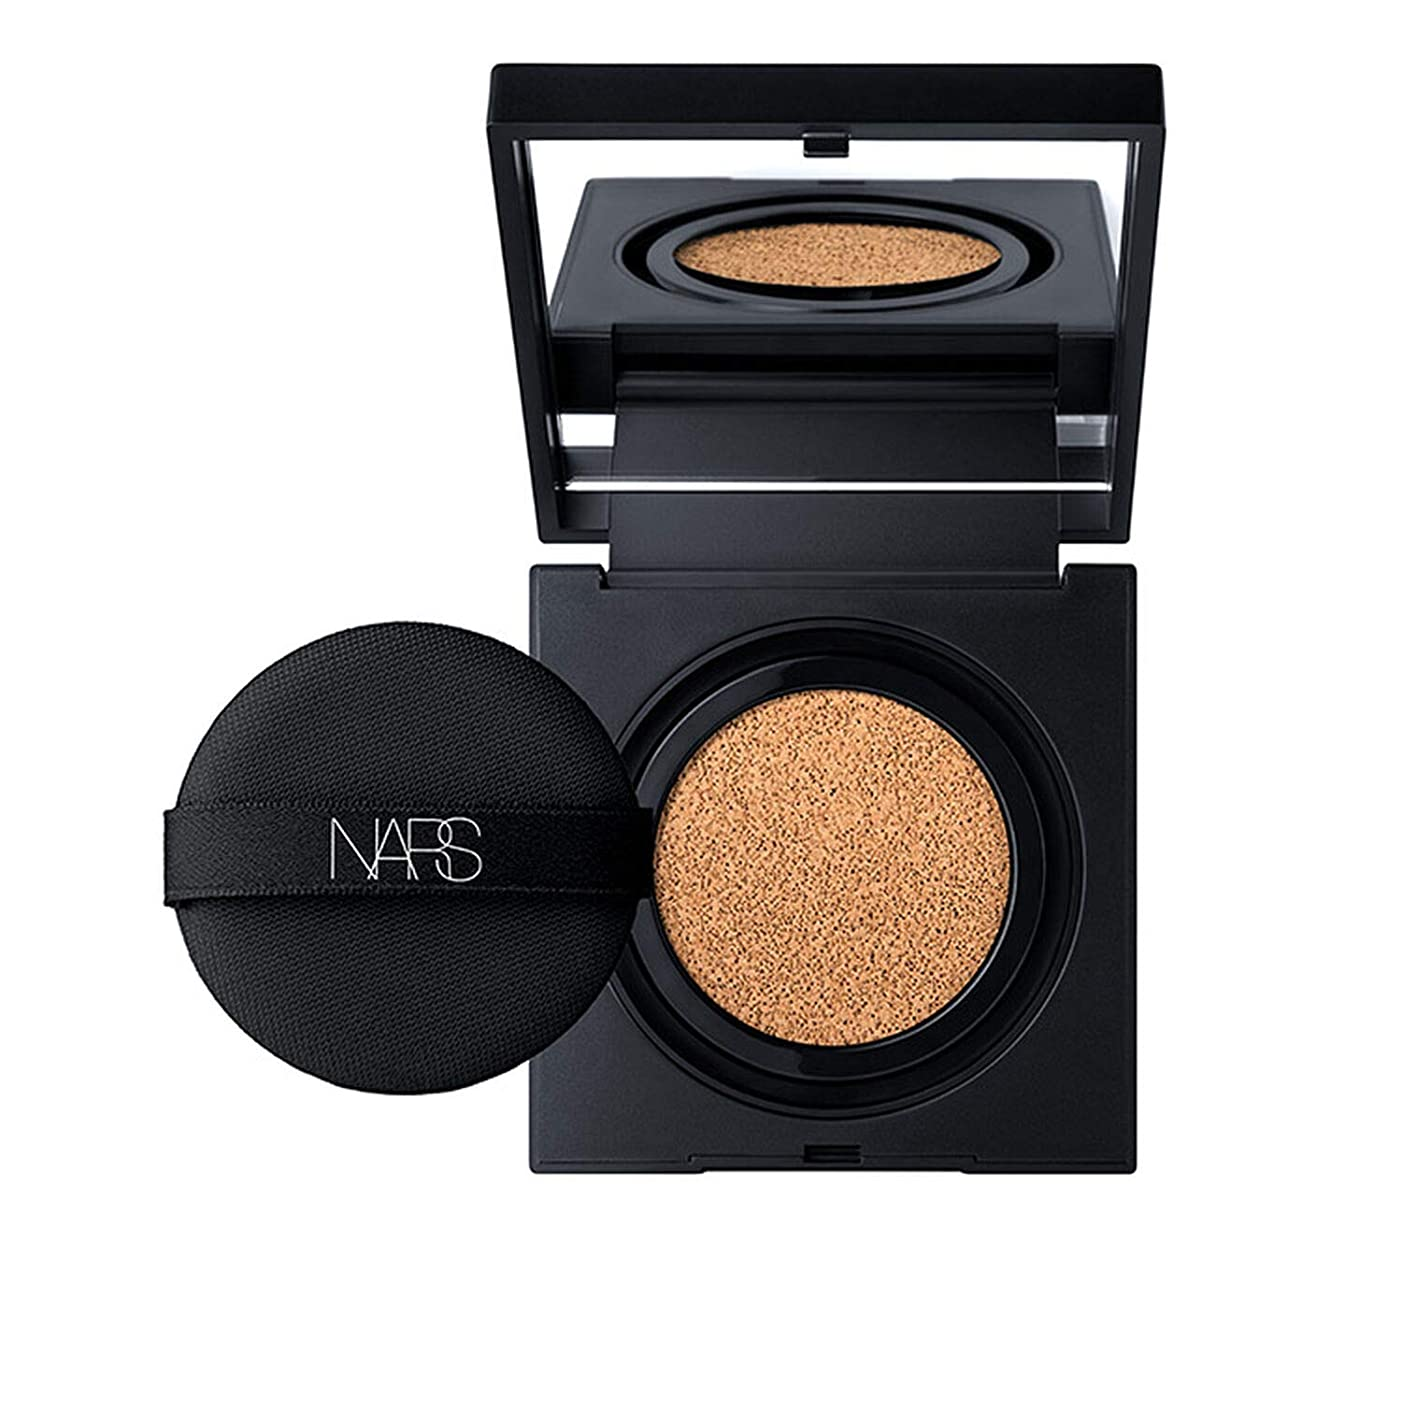 ベルベット協力的干渉Nars(ナーズ) Natural Radiant Longwear Cushion Foundation 12g # Punjab